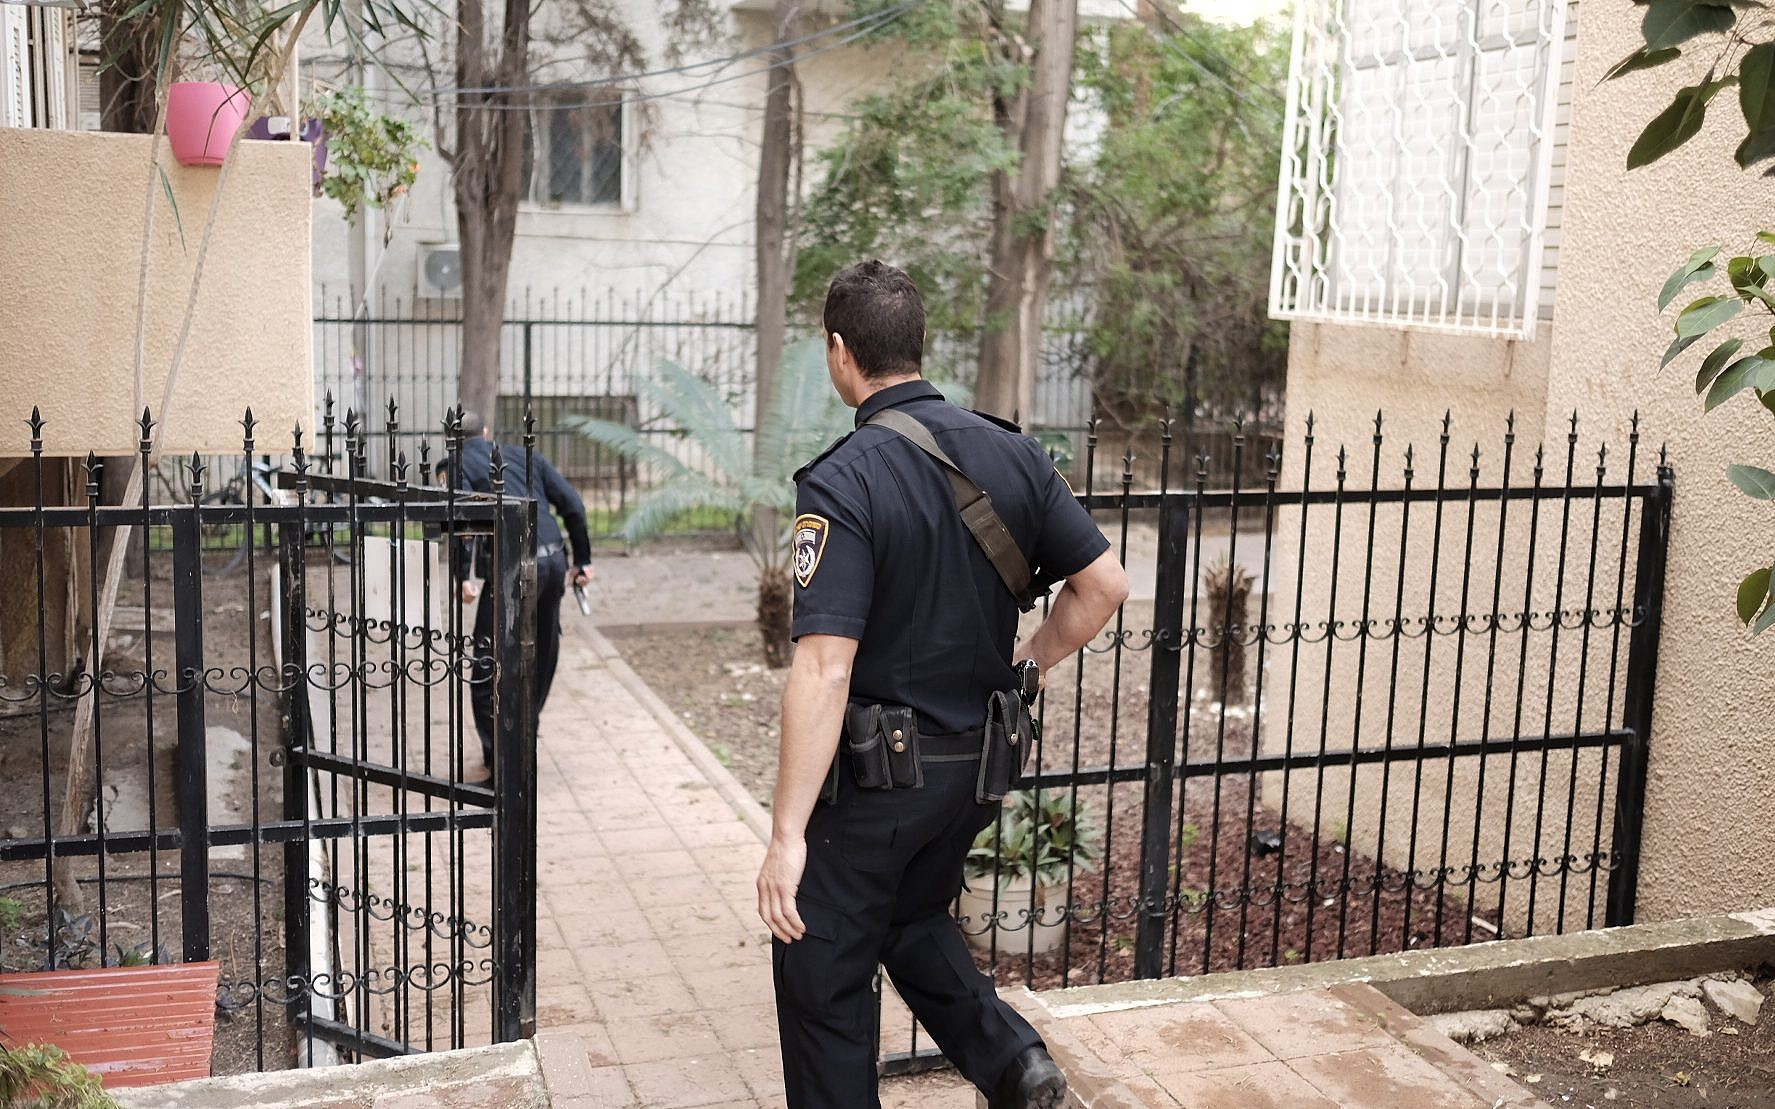 Cop suspected of using fake warrant to rob home | The Times of Israel